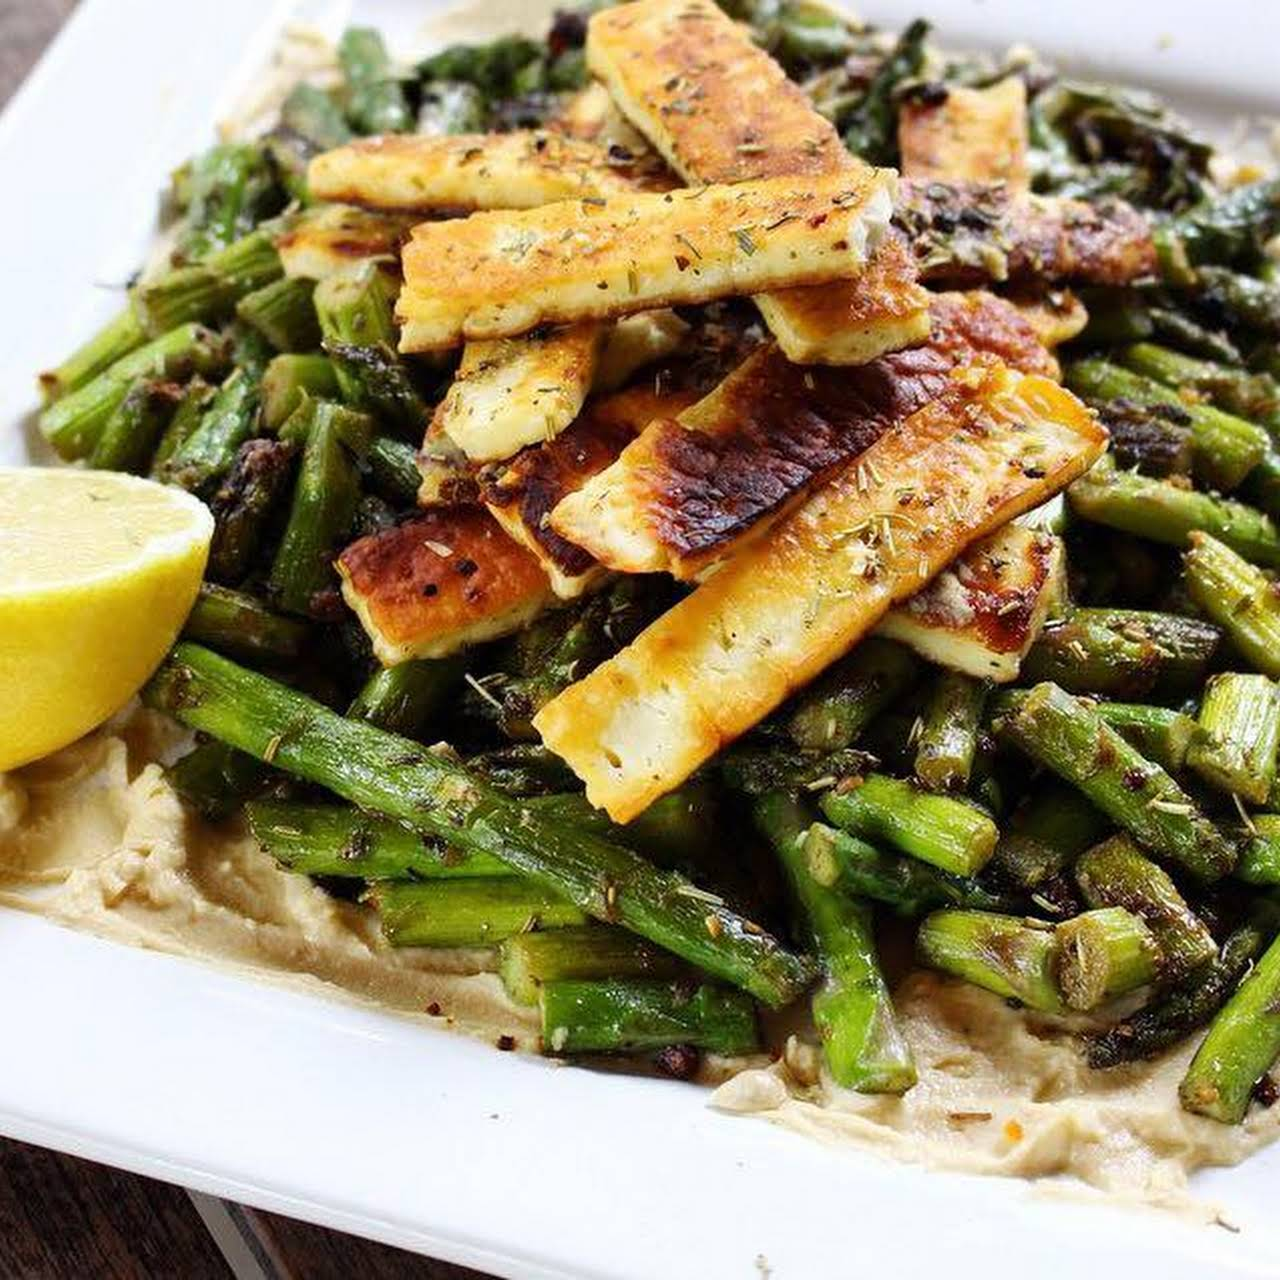 Crispy Herb and Garlic Halloumi on Asparagus and Hummus